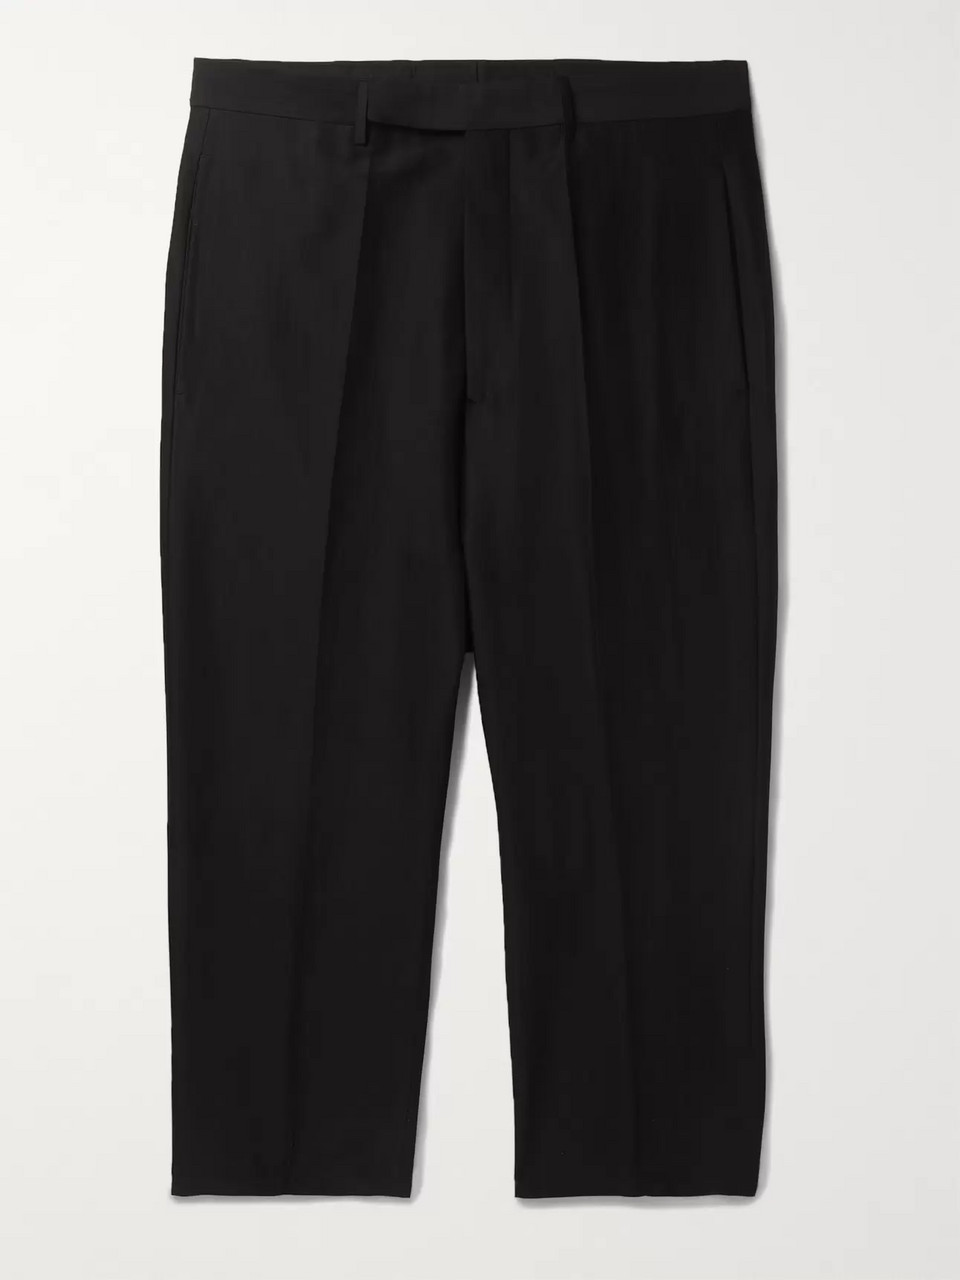 Rick Owens Black Cropped Cotton and Silk-Blend Trousers